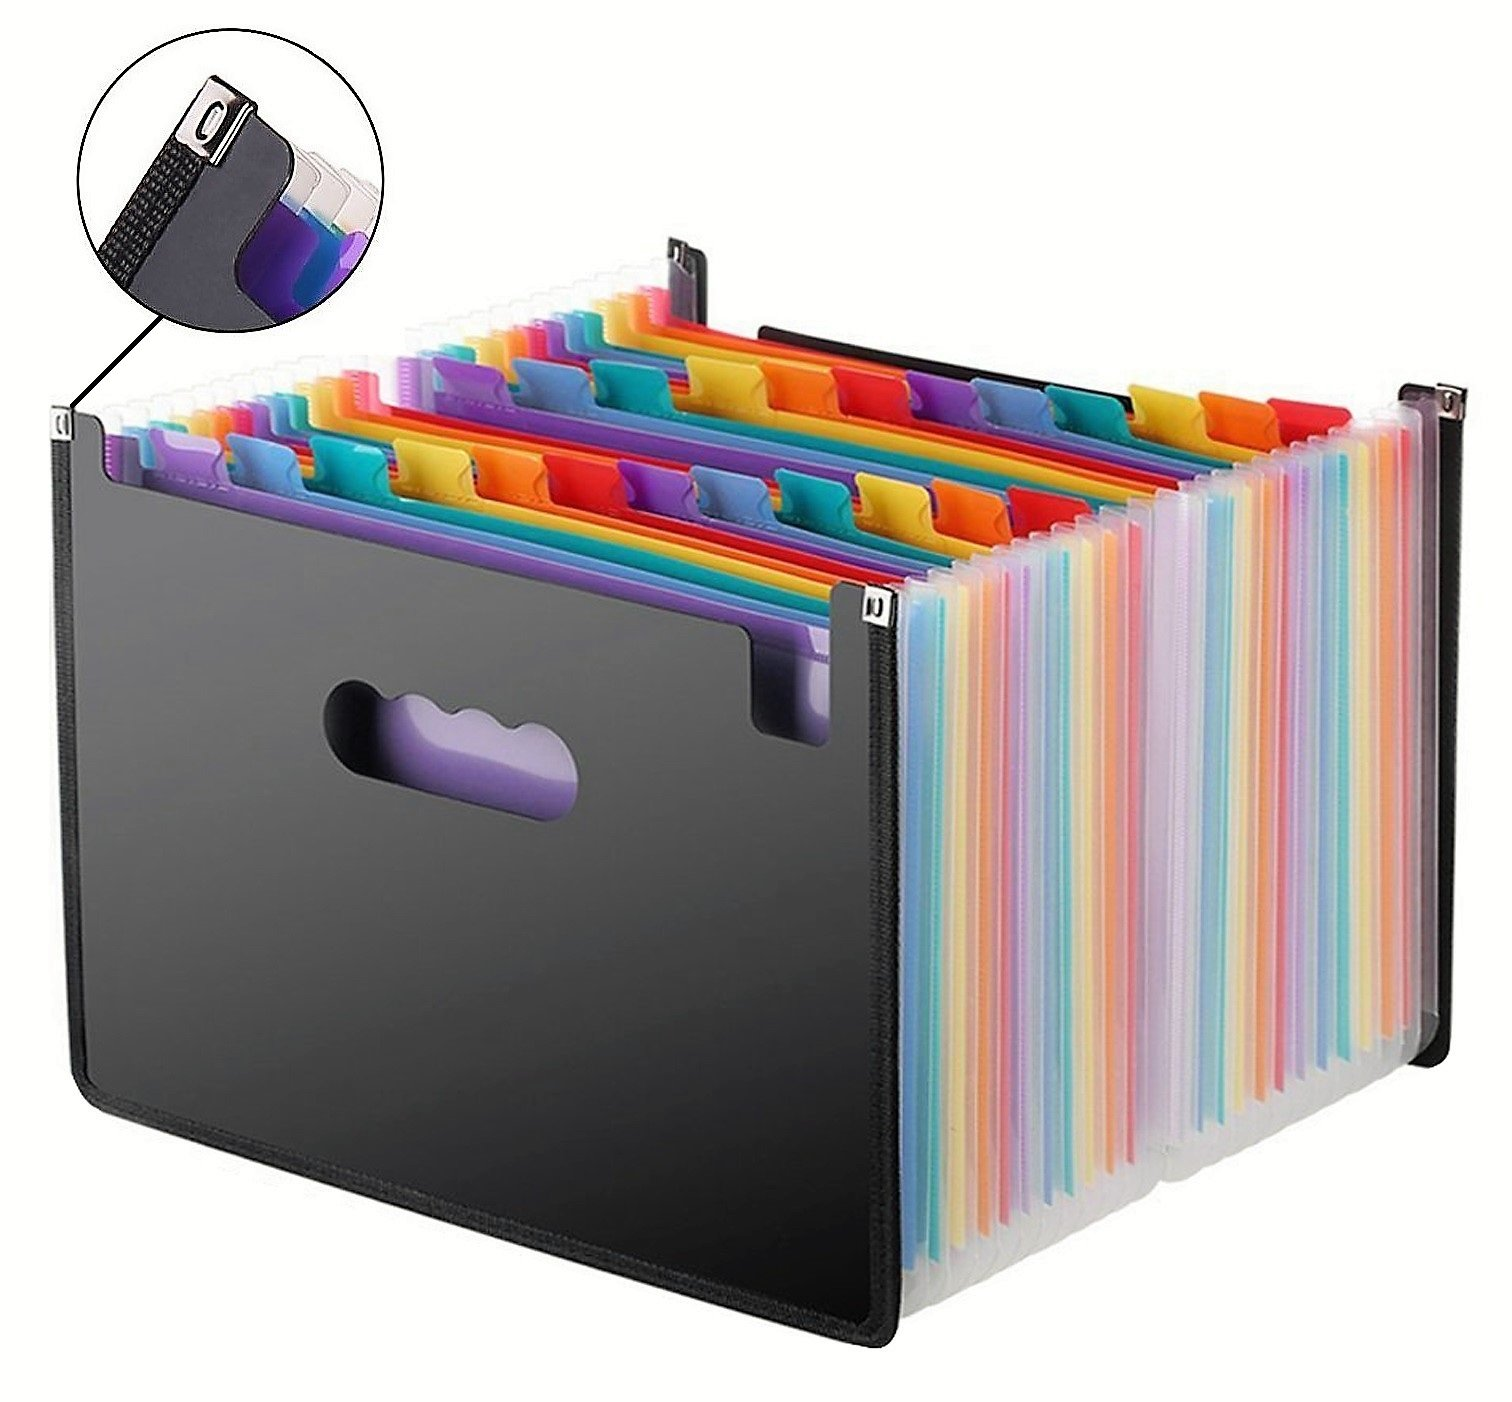 Expanding File Folder, 24 Pocket Multicolored, File Organizer, Cloth Edges, Durable, A4 & Letter Size Document - Office/Business/School